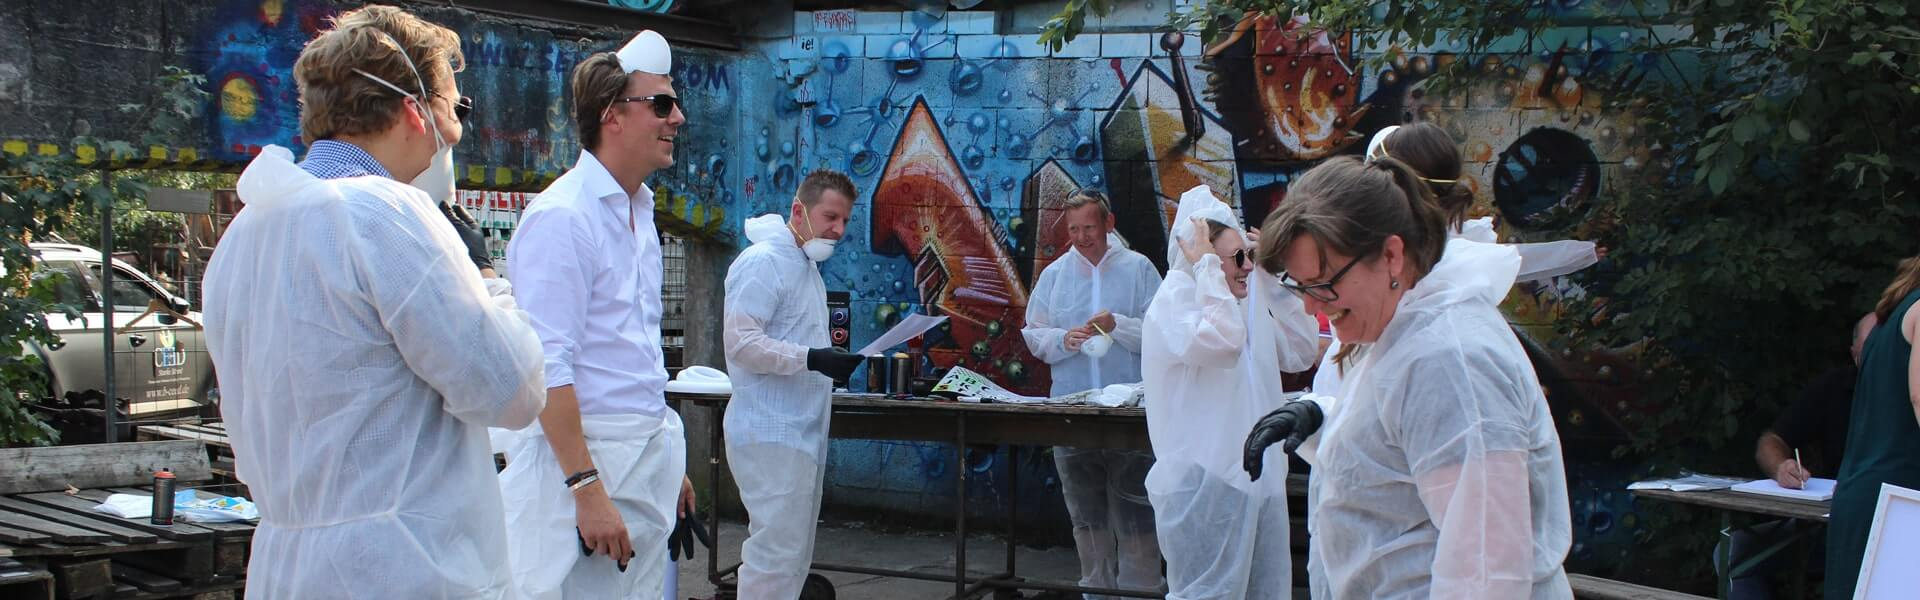 Graffiti Workshop als Teambuilding Event Idee mit b-ceed